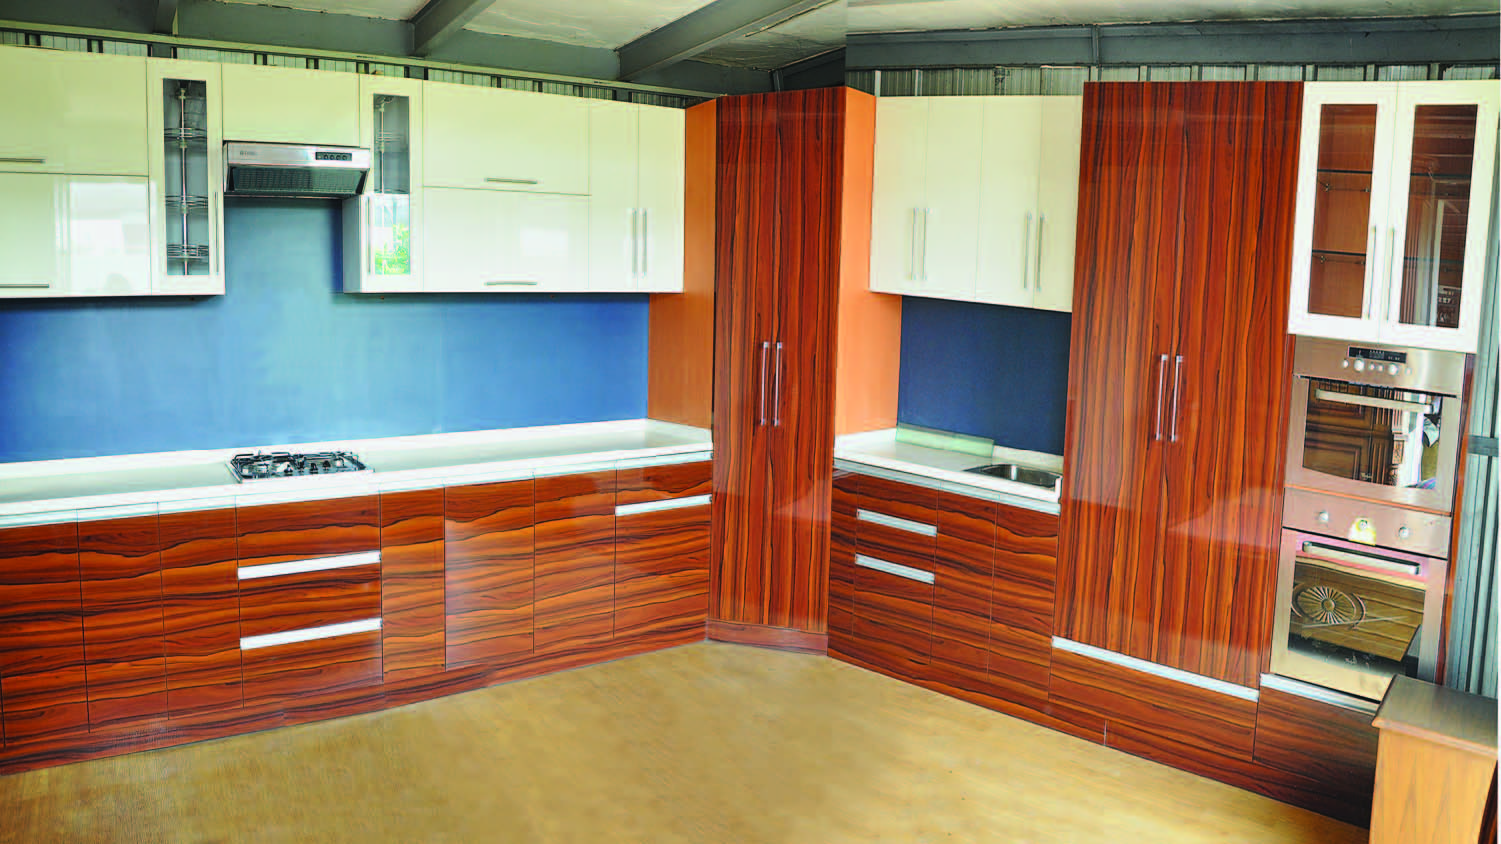 image modern kitchen. Modular Kitchens Image Modern Kitchen